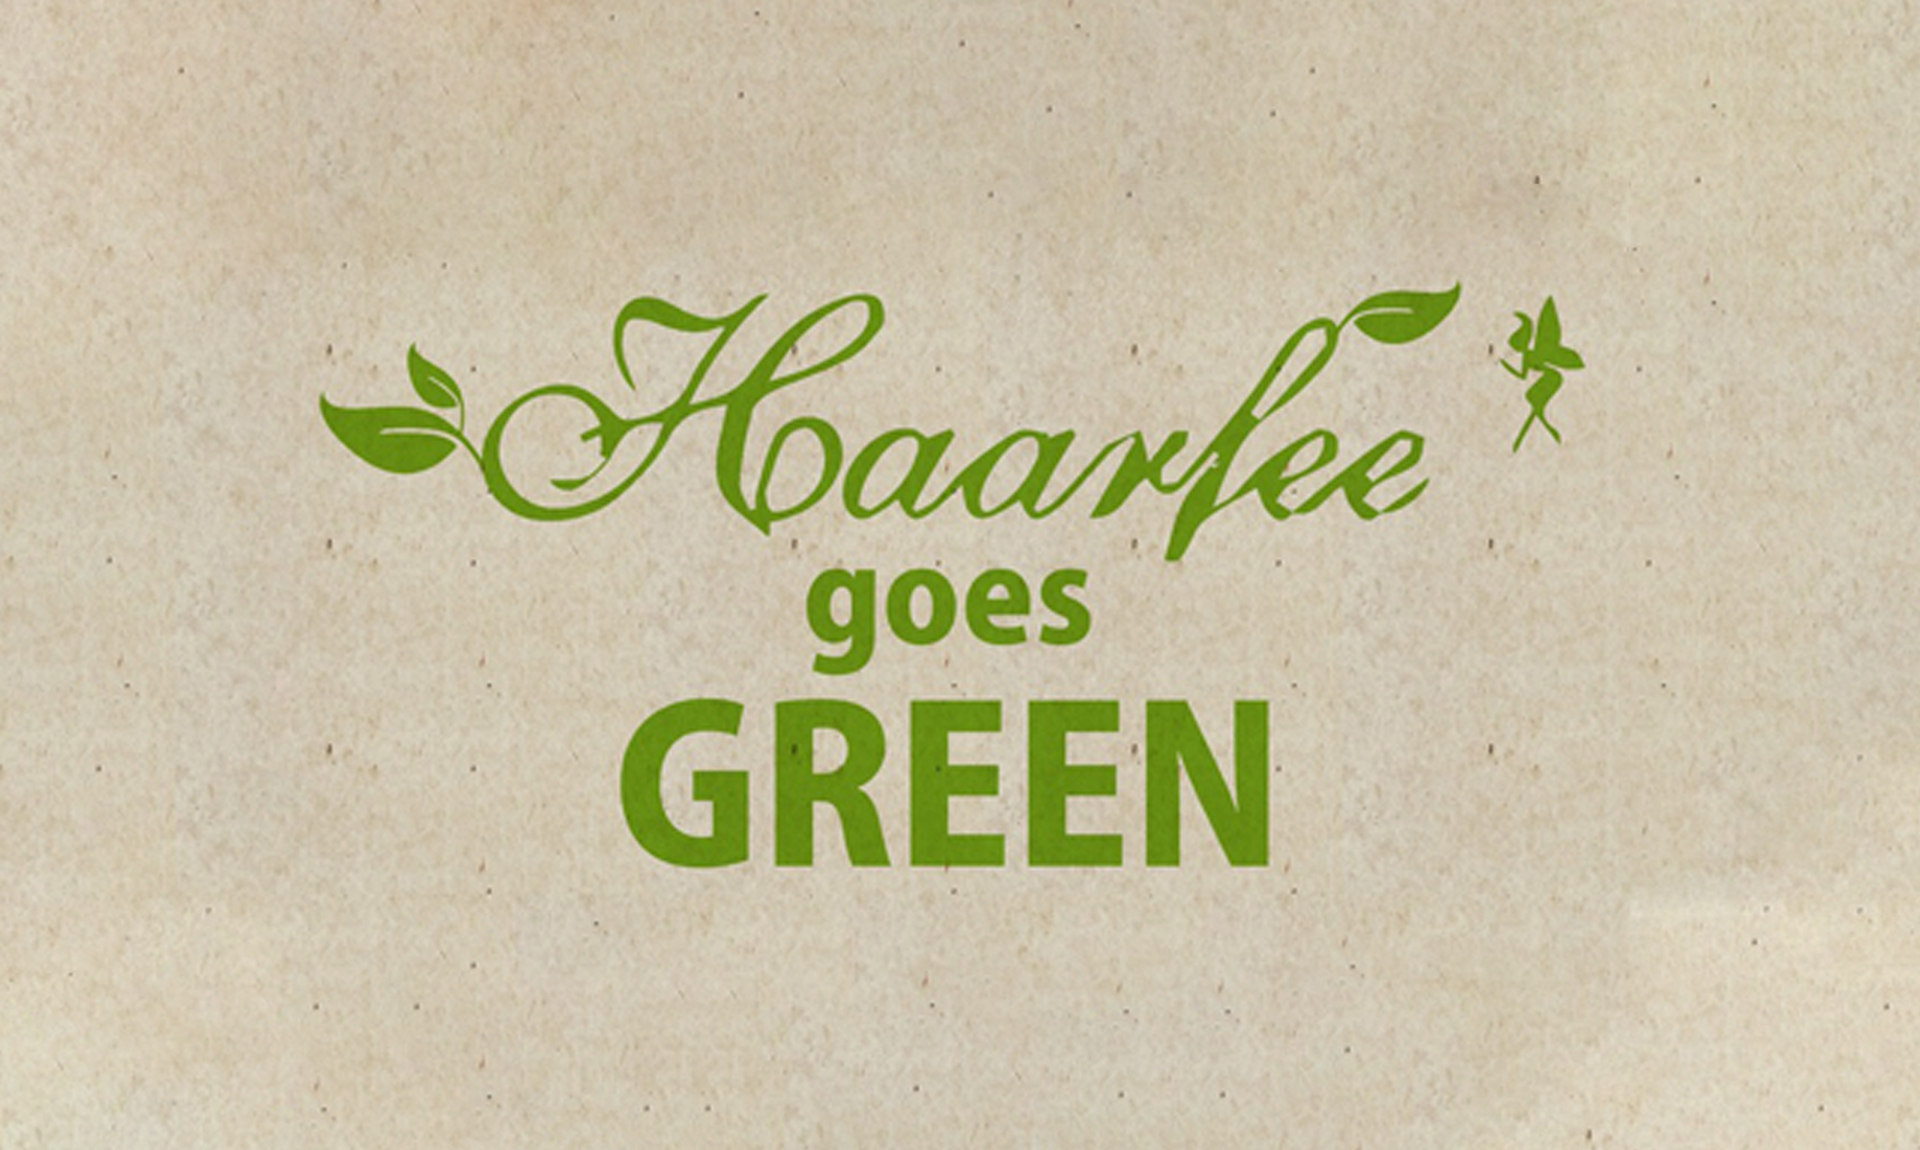 Haarfee goes Green